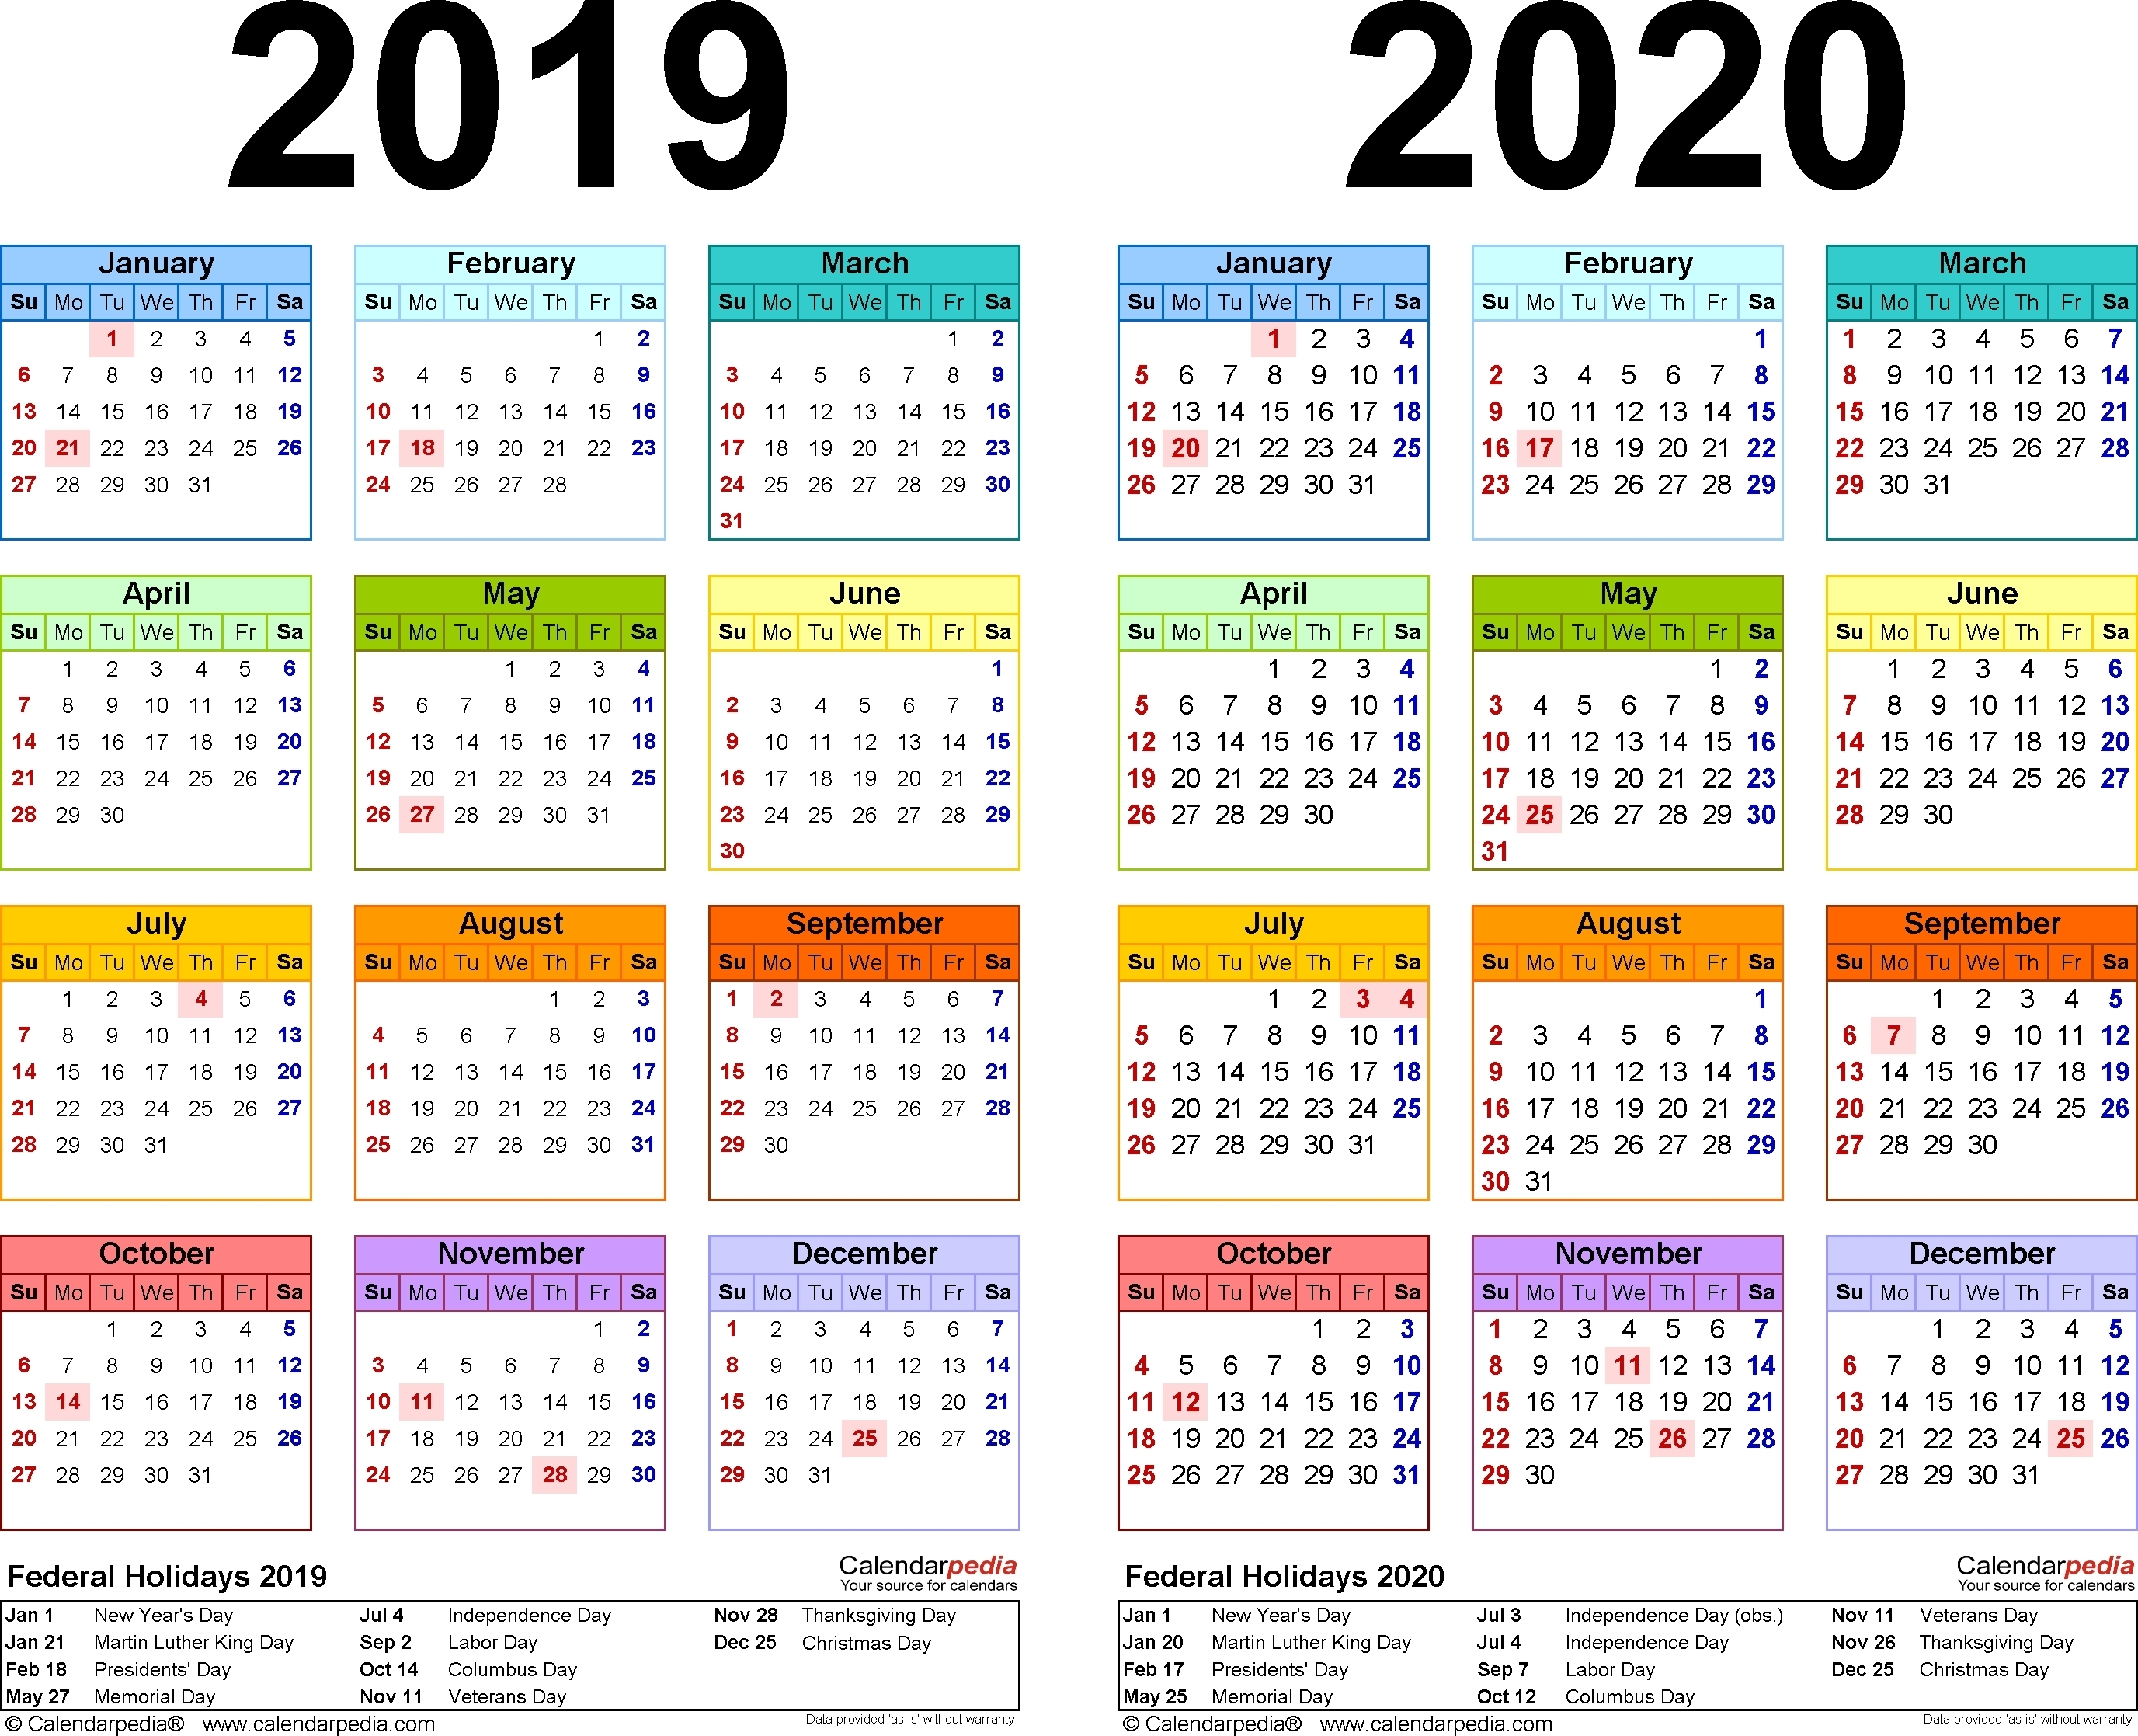 Https://idlewildfurnishing/2020-Blank-Hk-Calender/ 2019-January 2020 Hong Kong Calendar